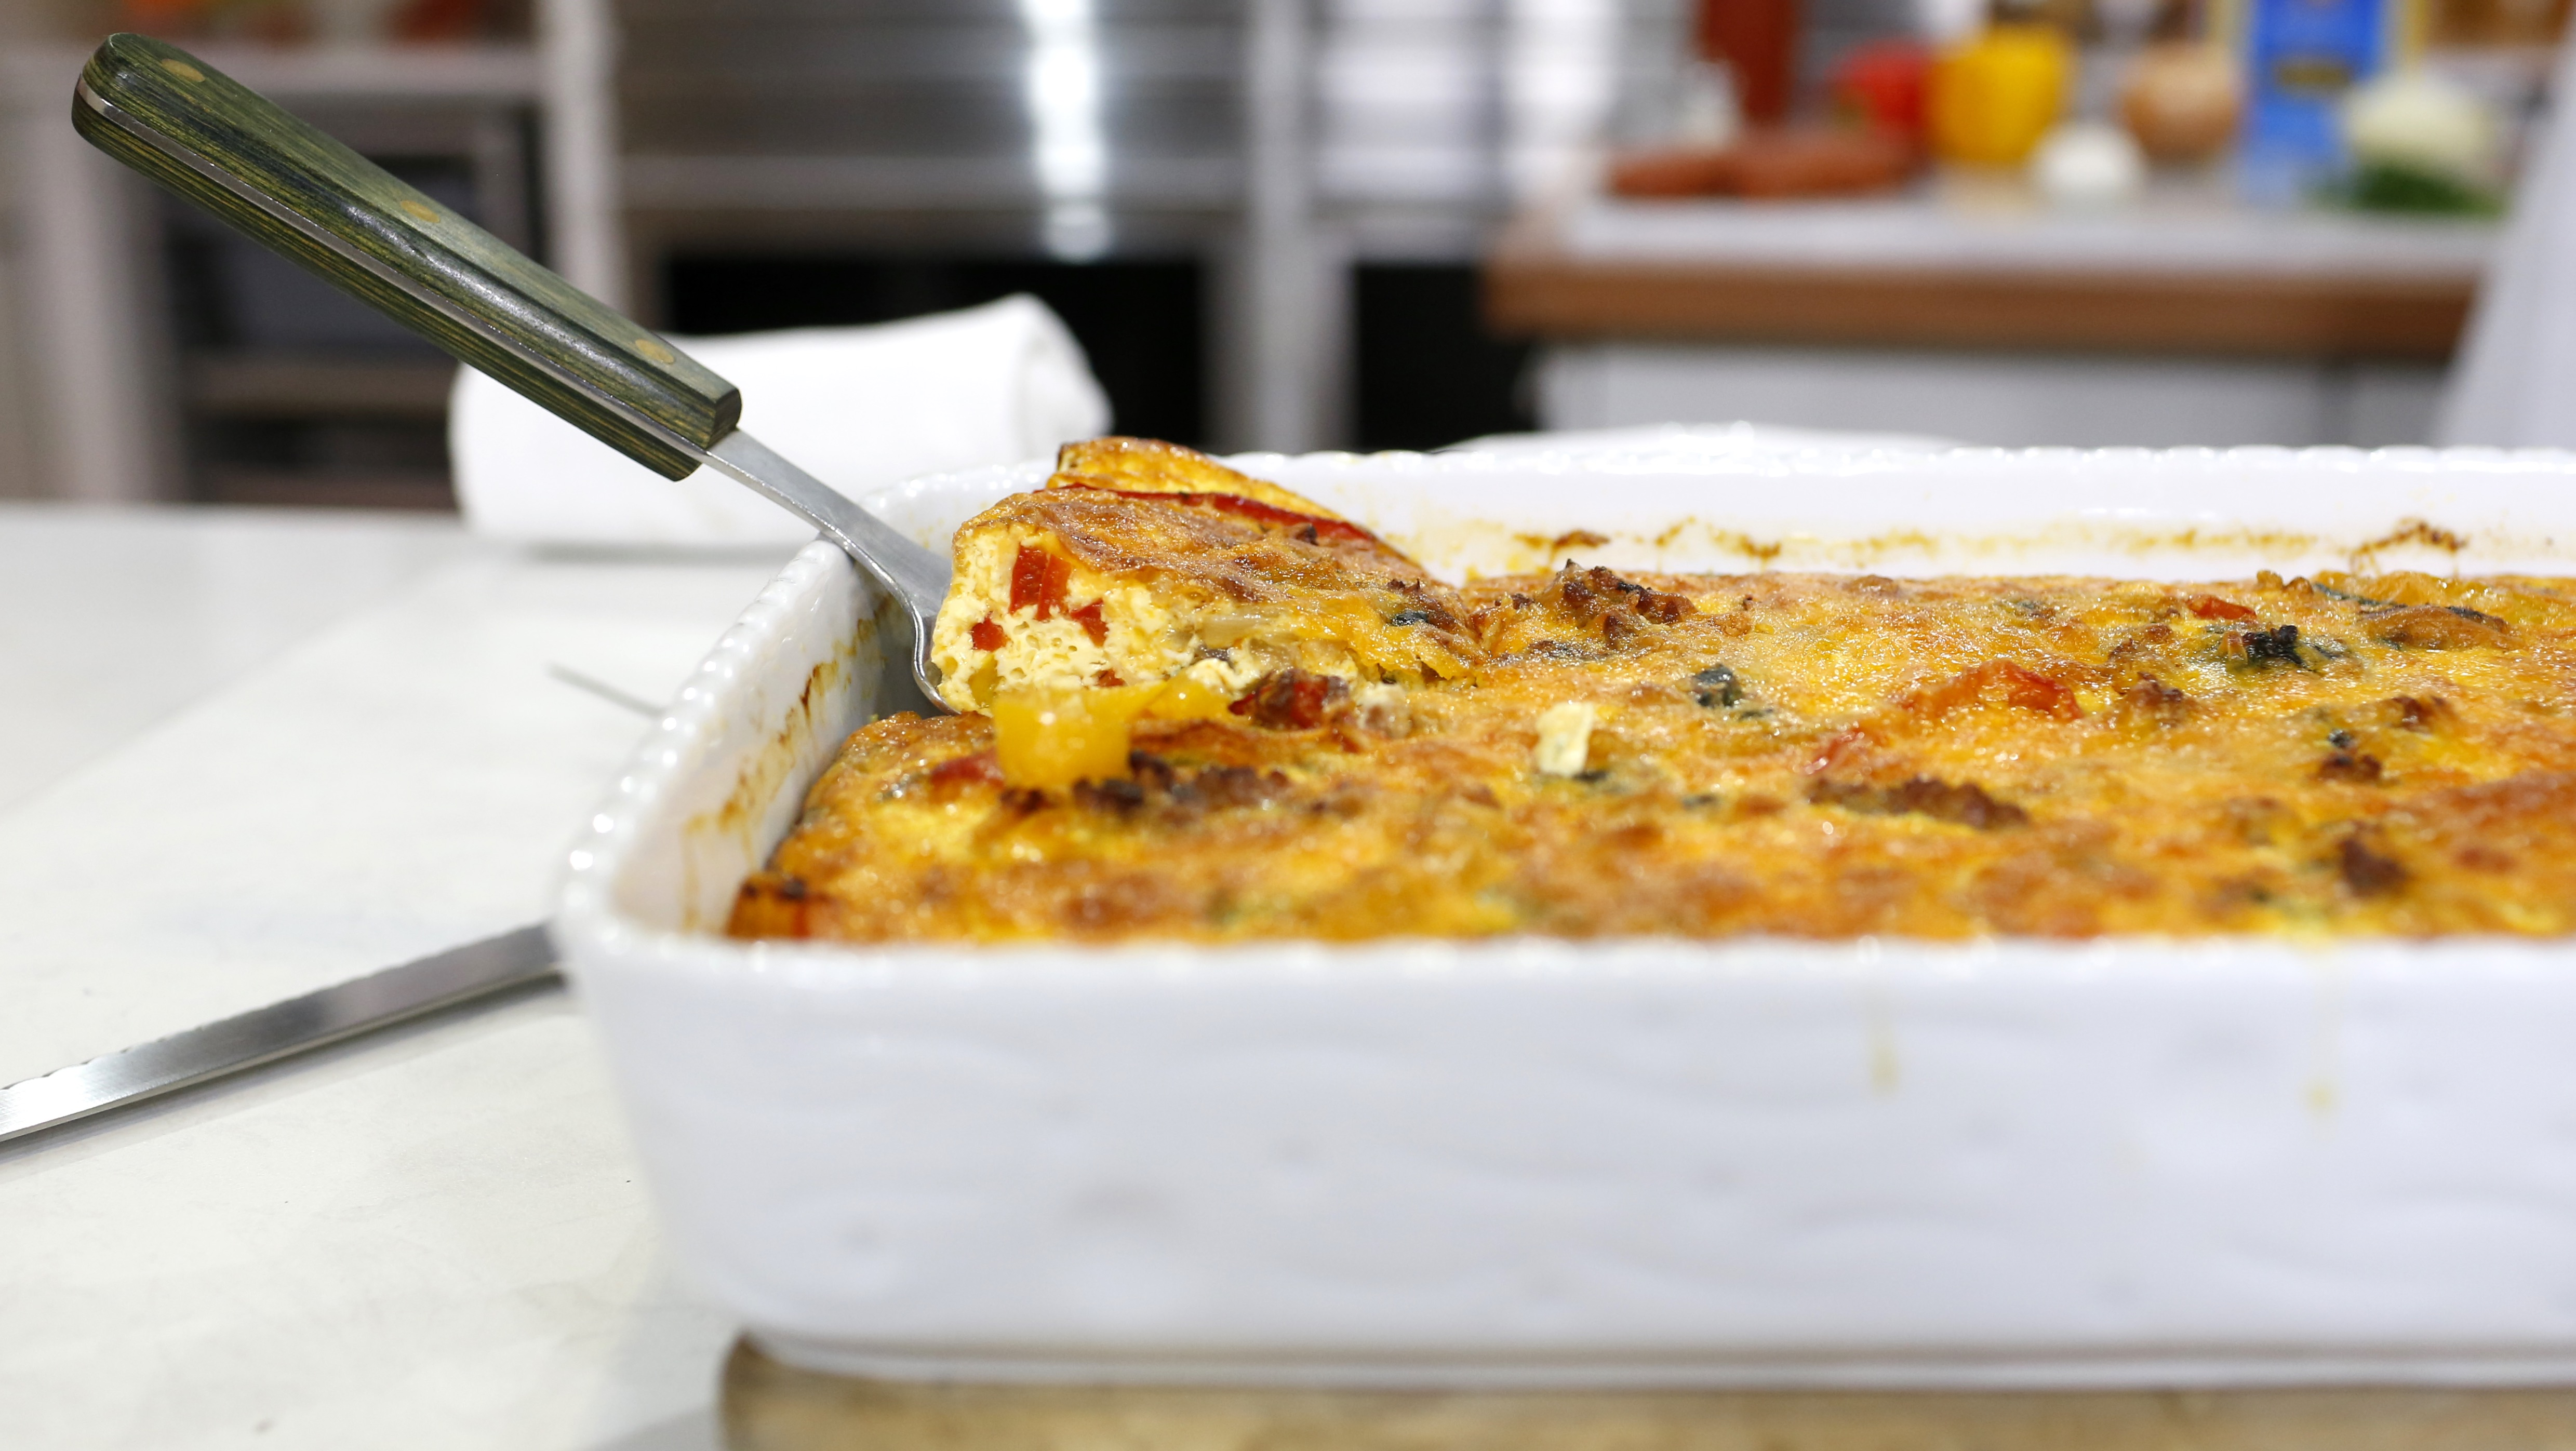 Easy Italian Sausage And Peppers Breakfast Casserole